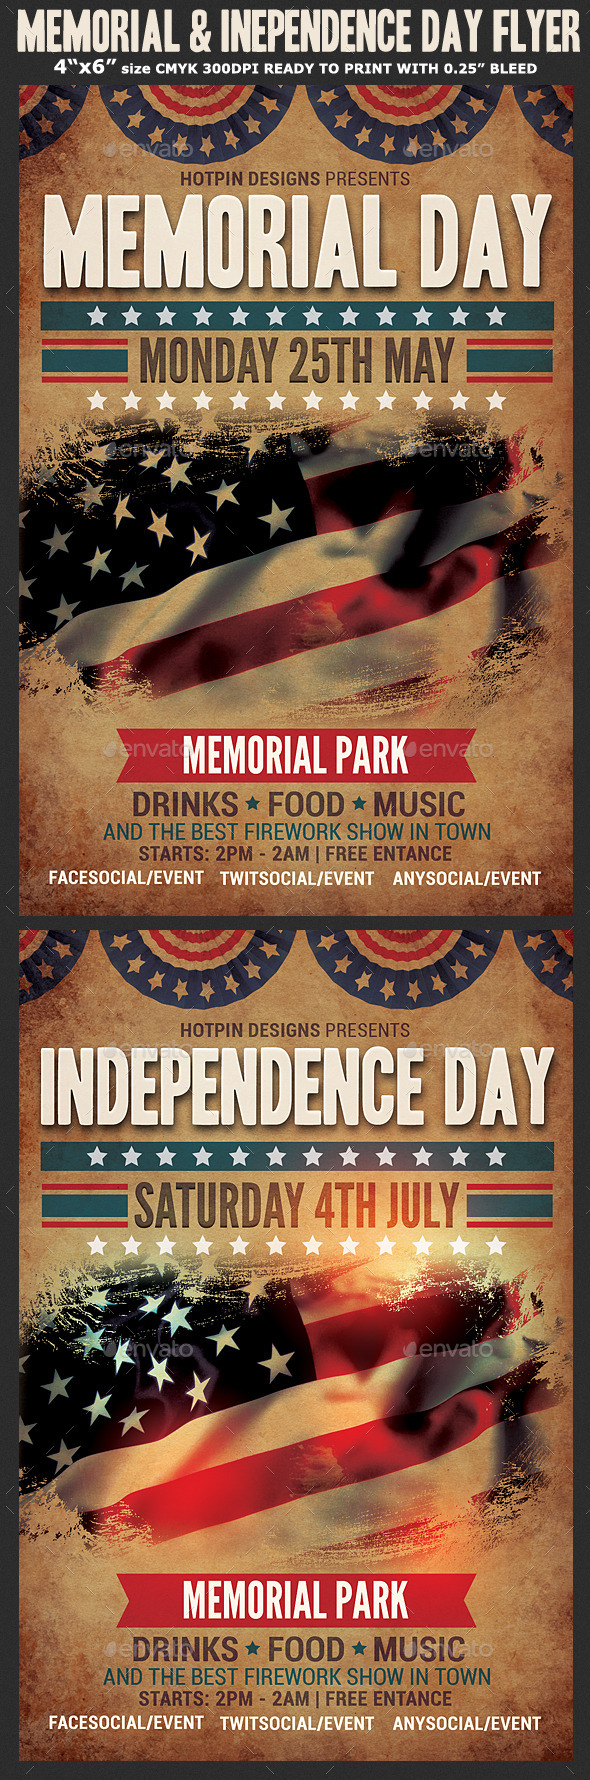 Memorial & Independence Day Flyer Template - Events Flyers